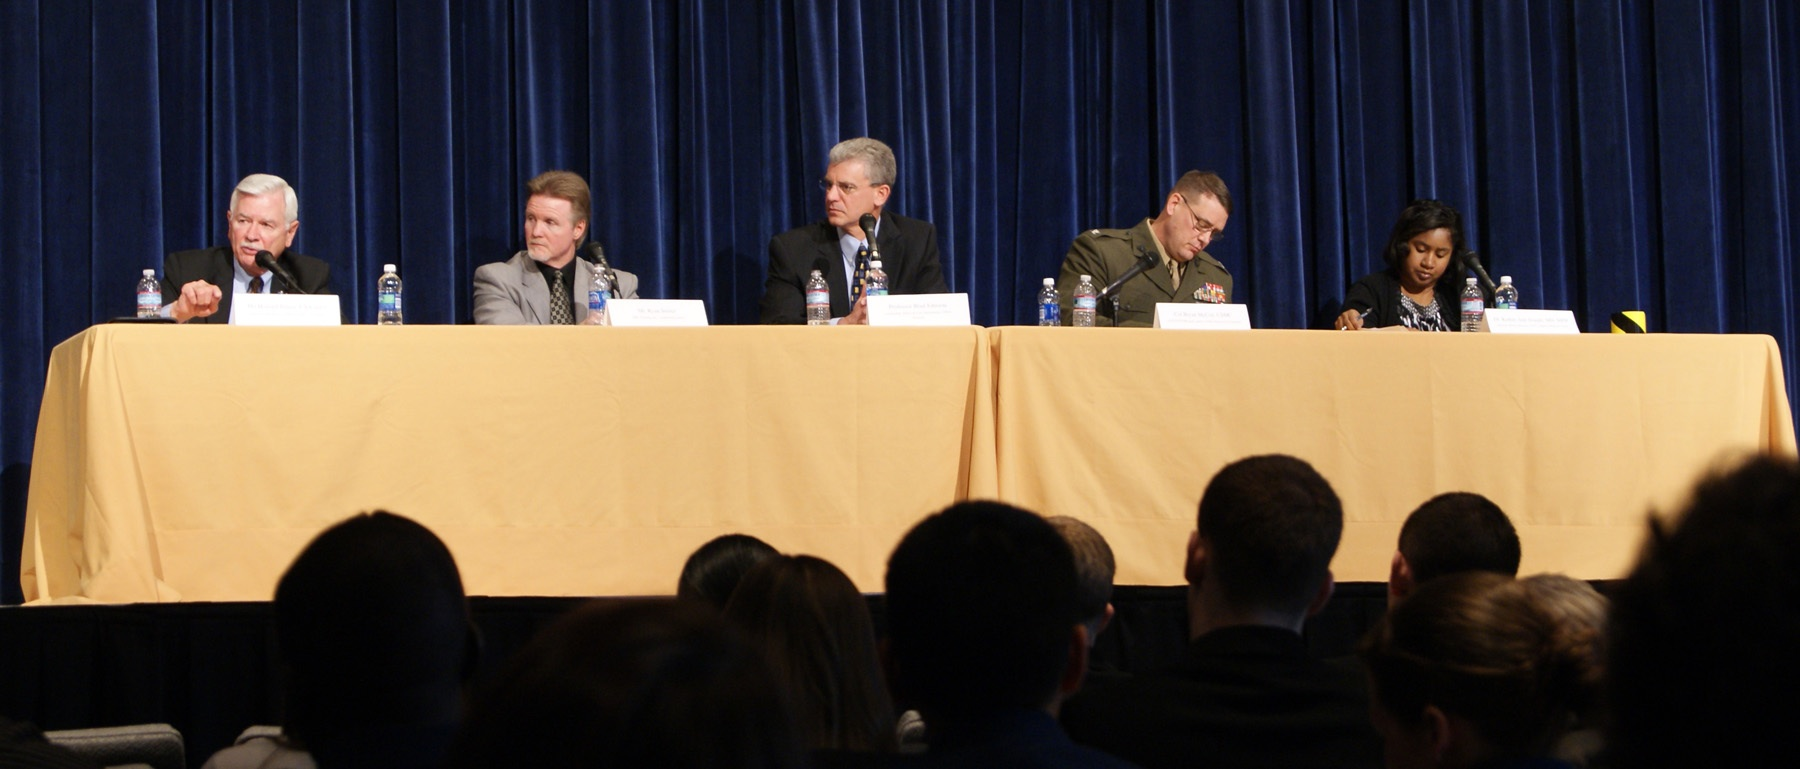 Dr. Howard Prince participates in US Naval Academy leadership conference panel.